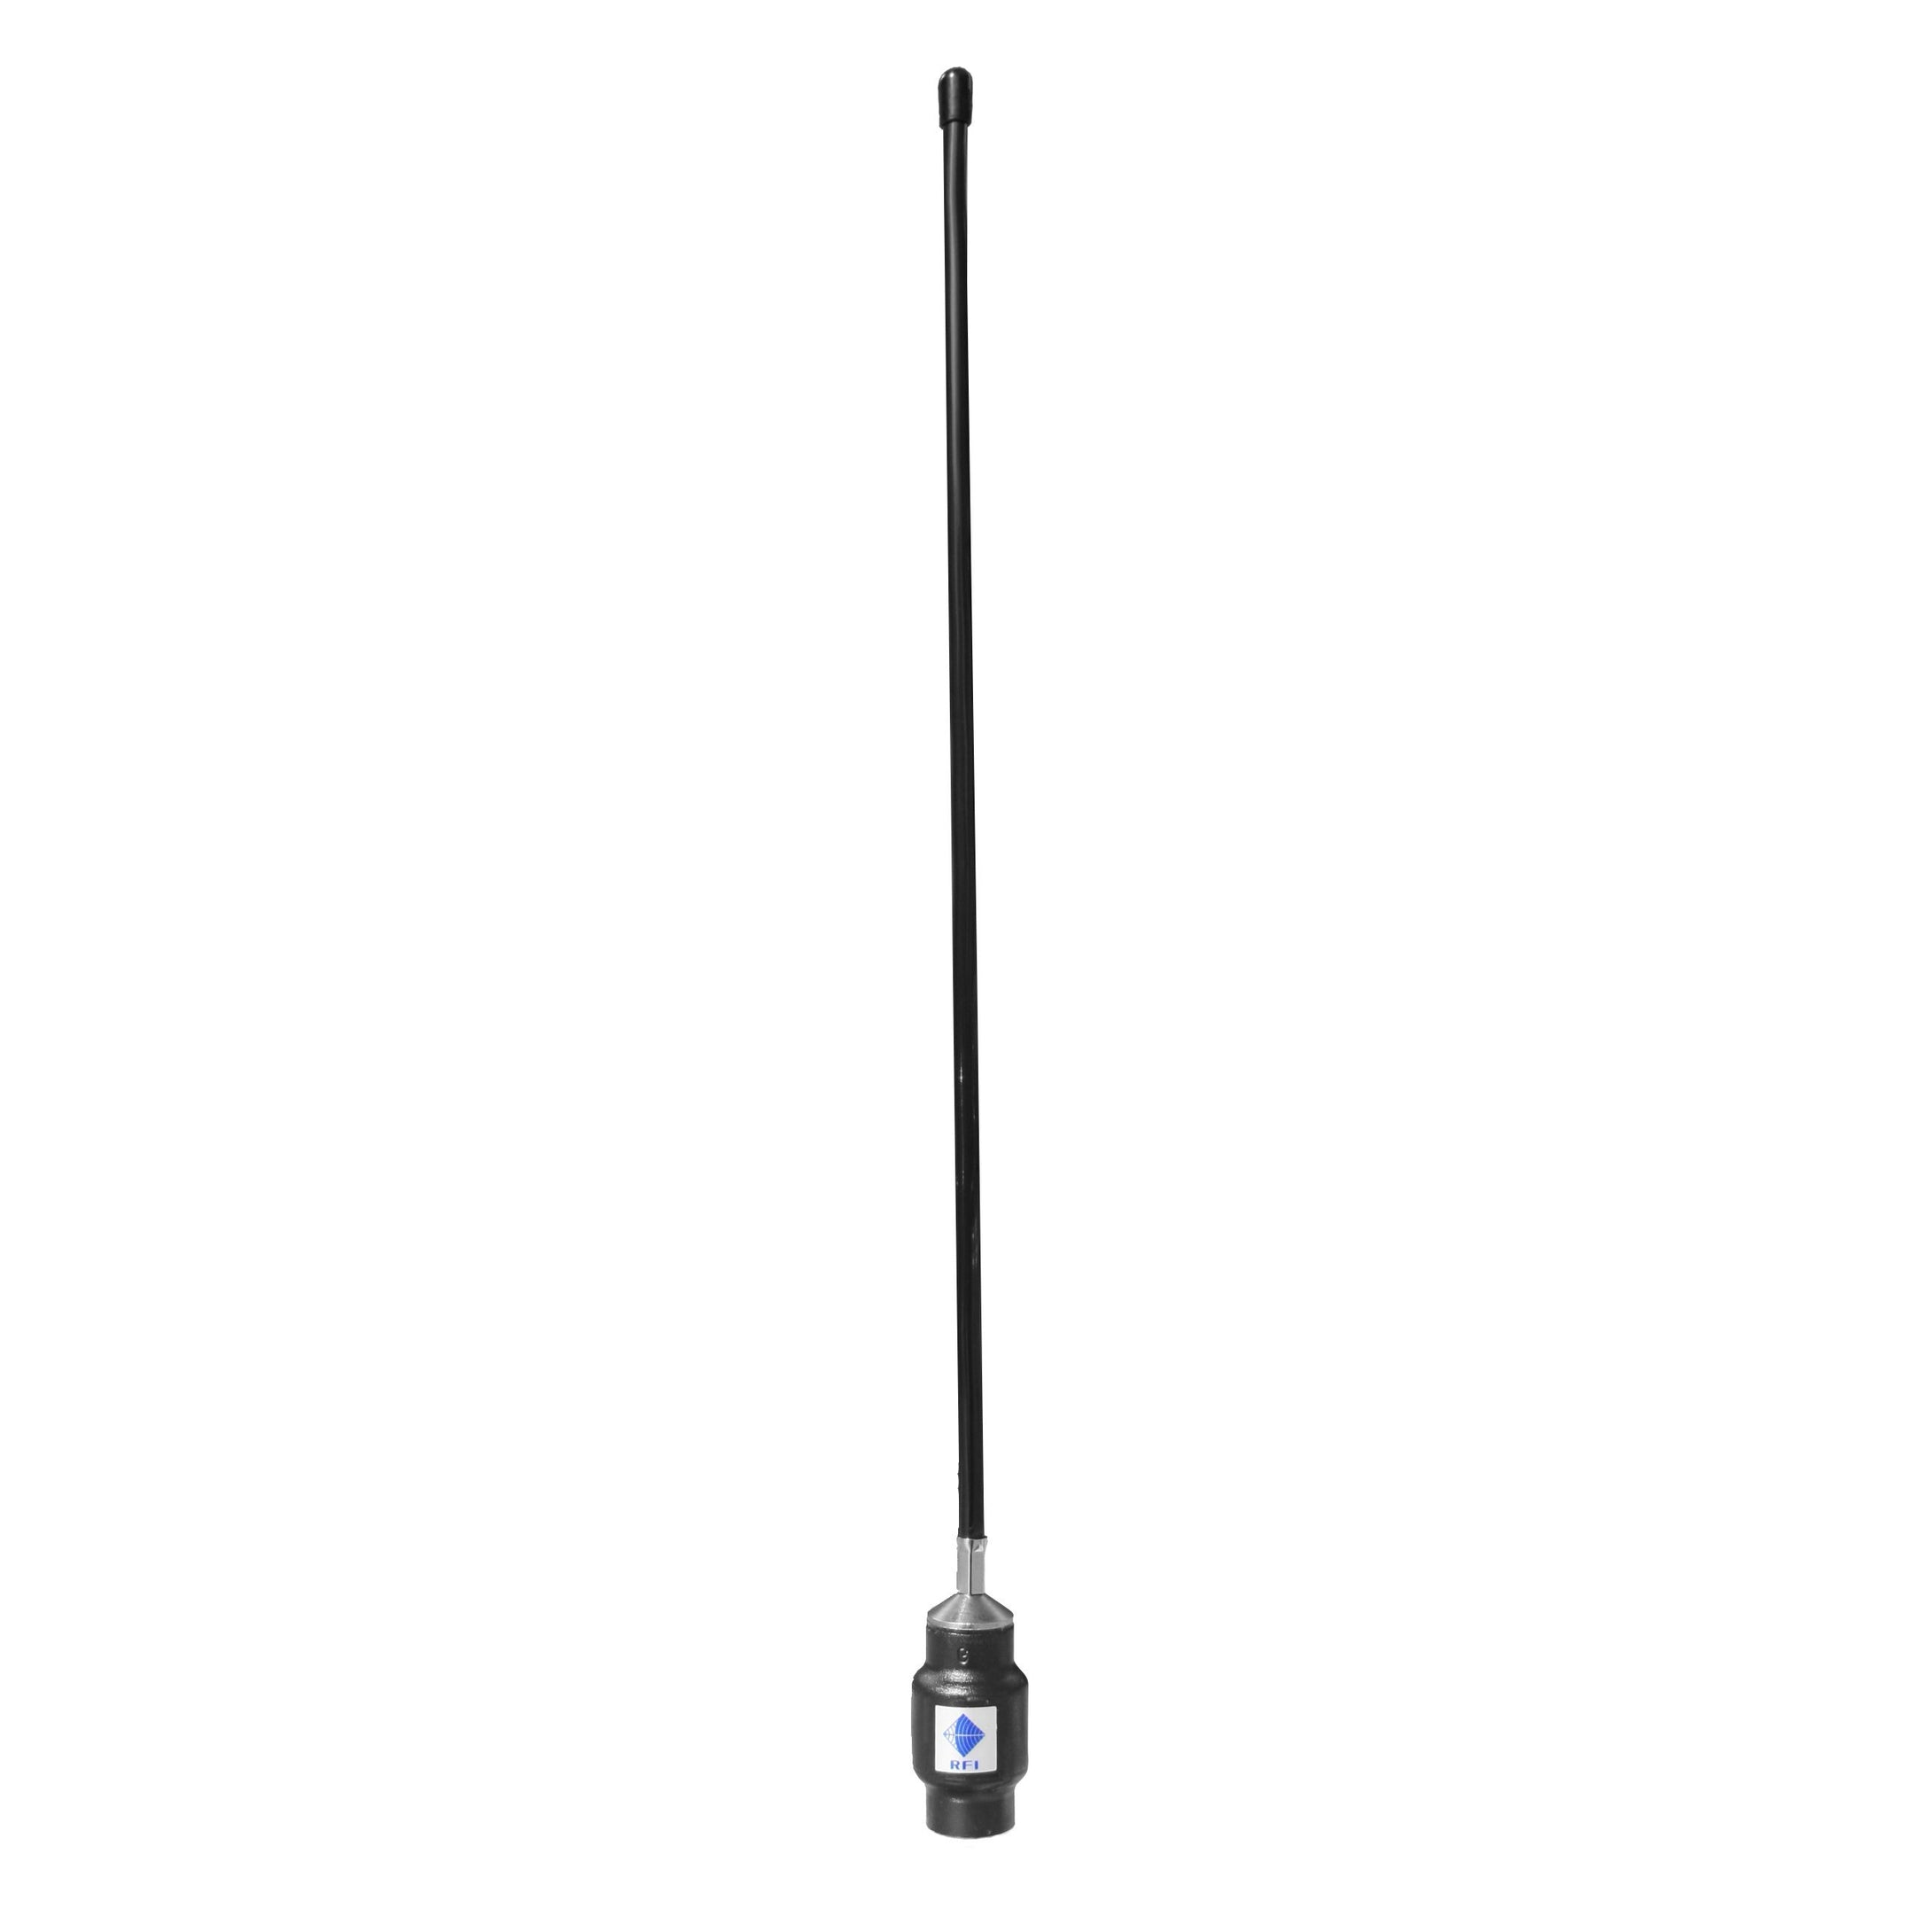 RFI CD51-65-70 UHF Ground Independent Mopole 380 - 440 MHz - Threaded Stud - Point to Point Distributions